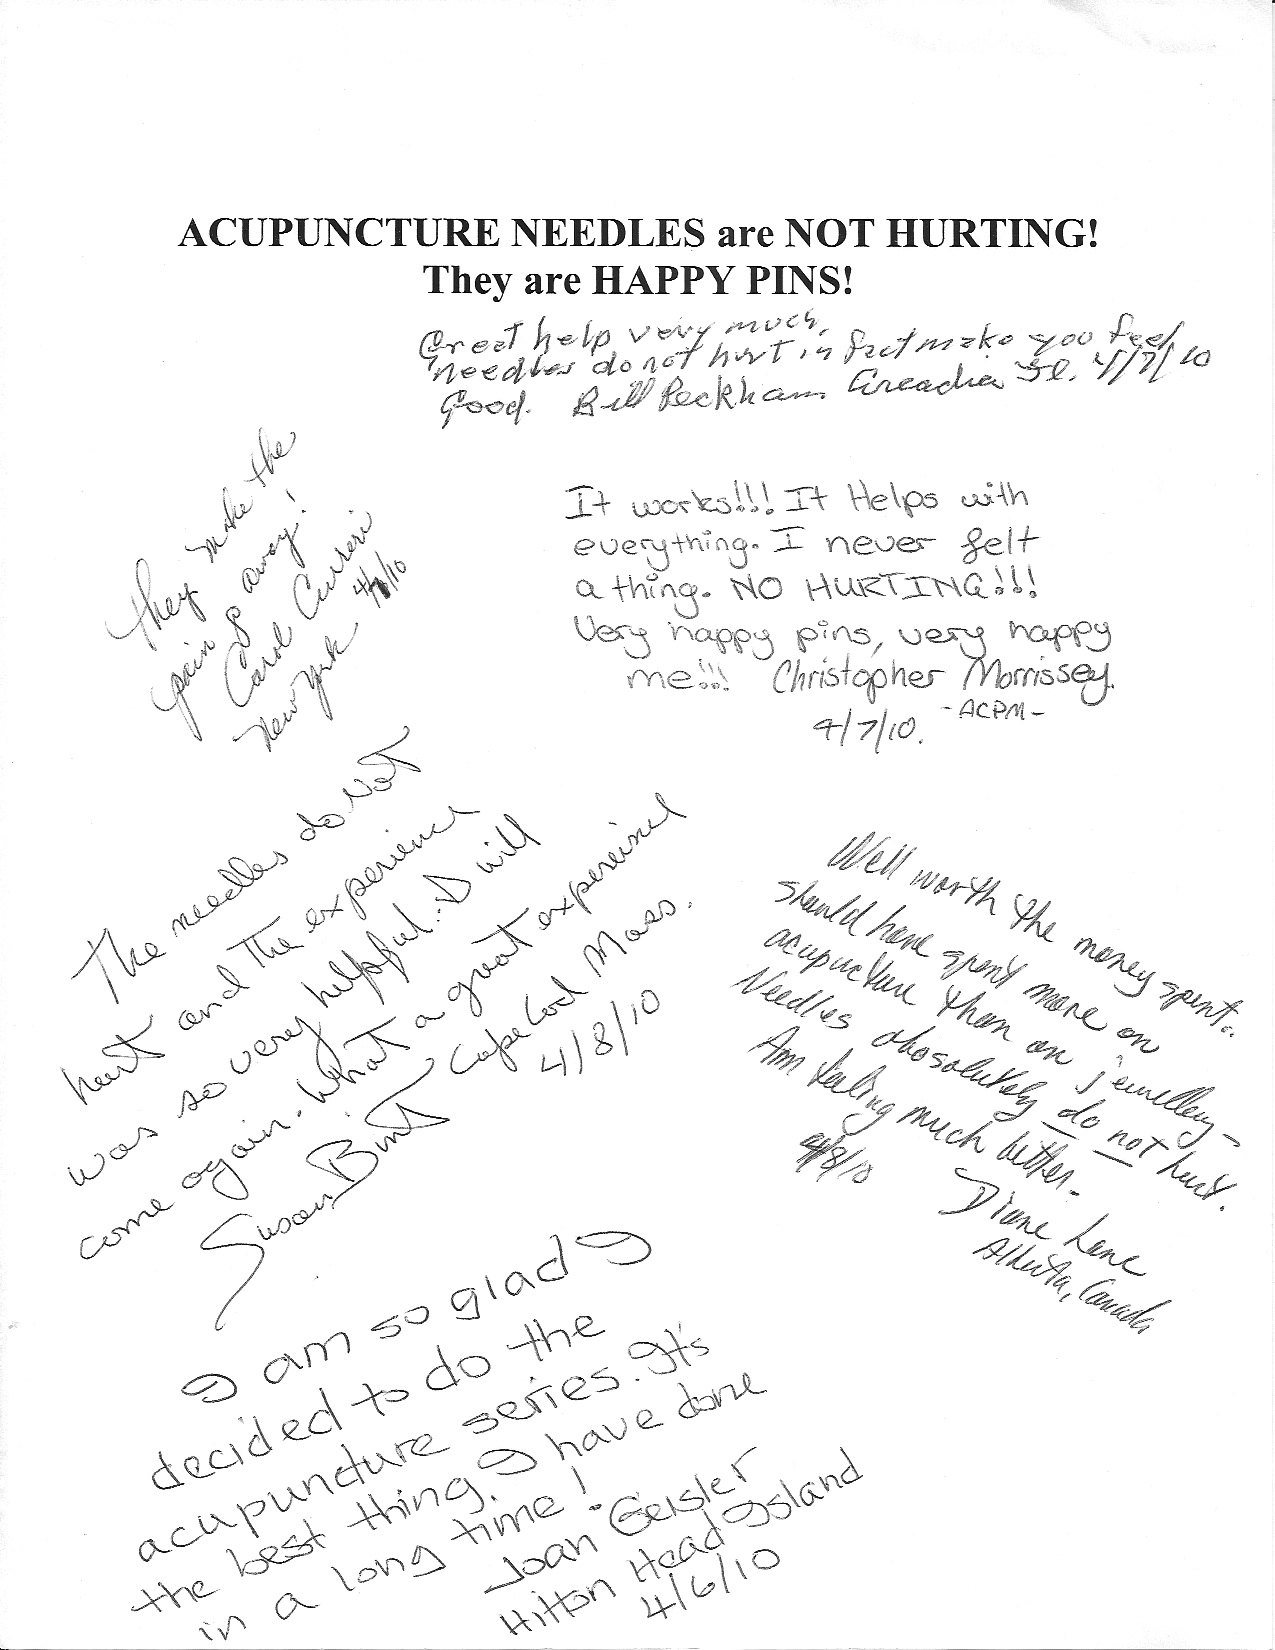 Does acupuncture needle hurt universal acupuncture and acupuncture needles are not hurting solutioingenieria Image collections